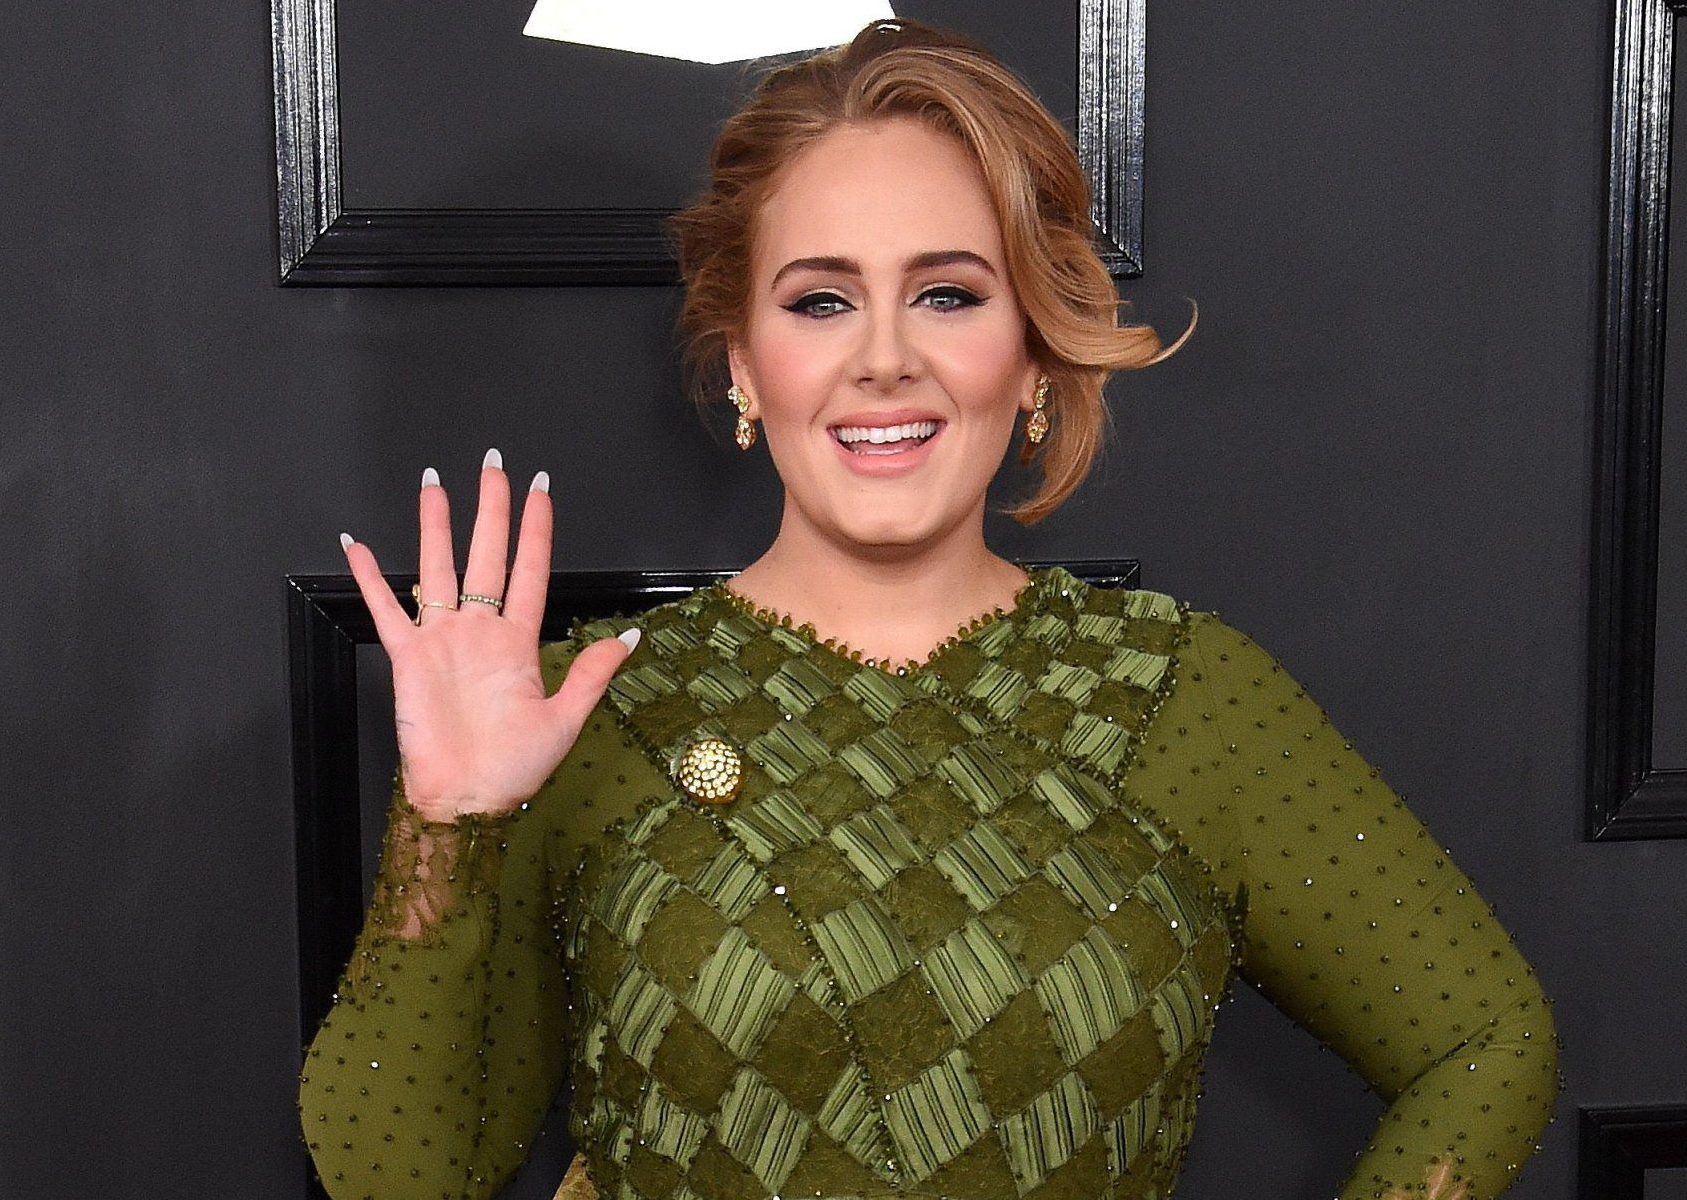 Adele totally fangirled over Beyonce by wearing a lemon brooch to the Grammys and everyone loved it